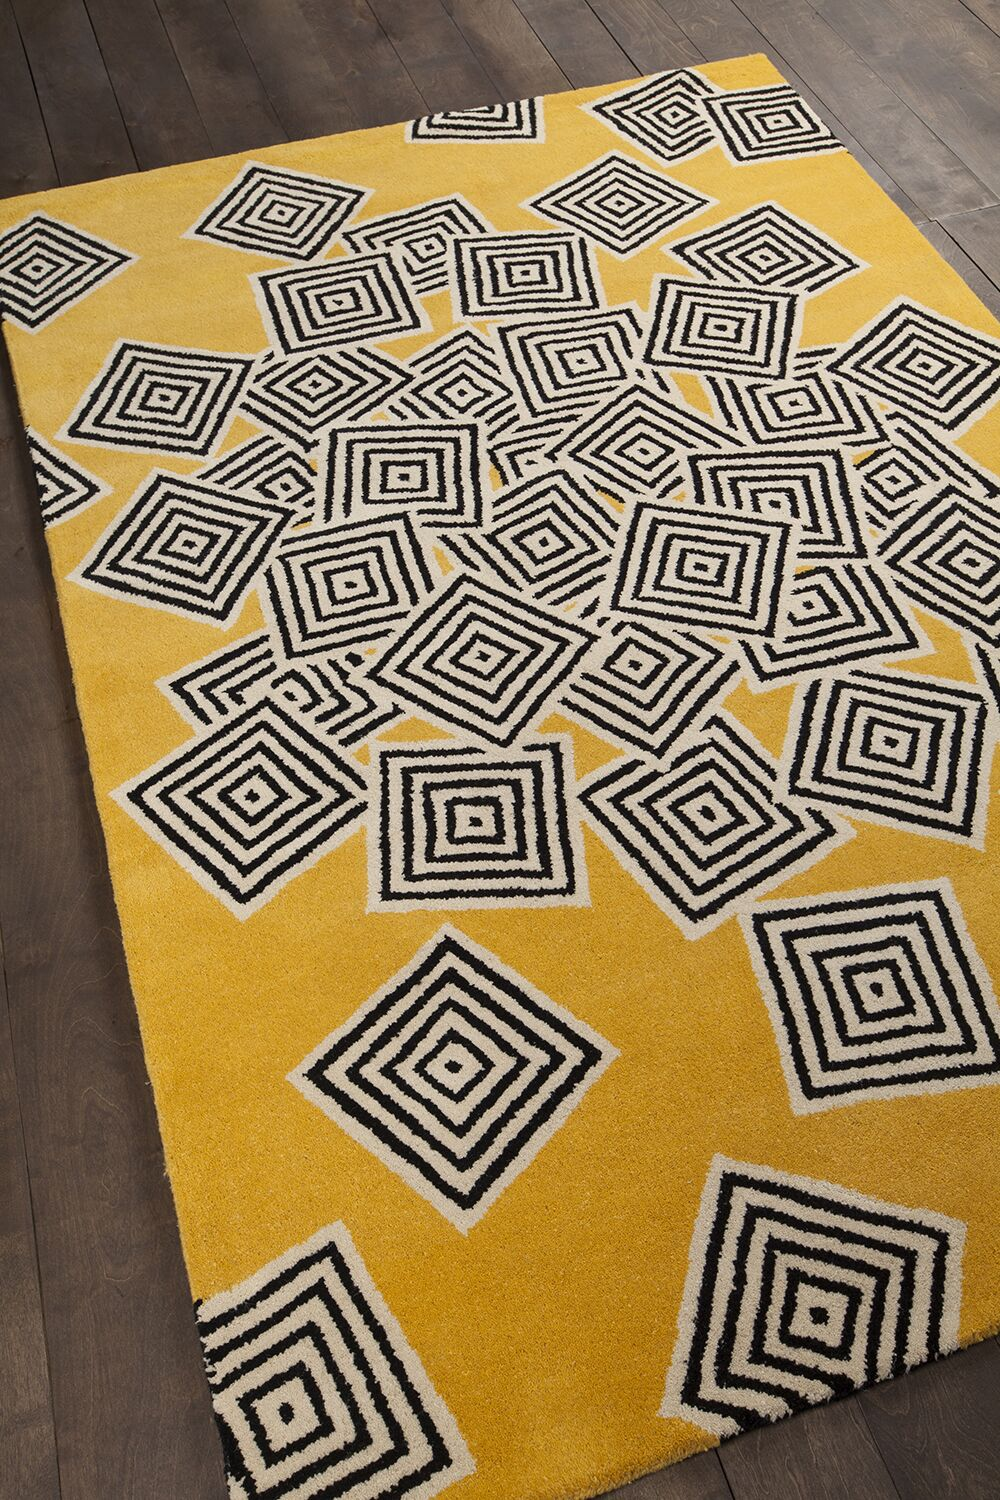 Burns Patterned Yellow & Black Area Rug Rug Size: 5' x 7'6